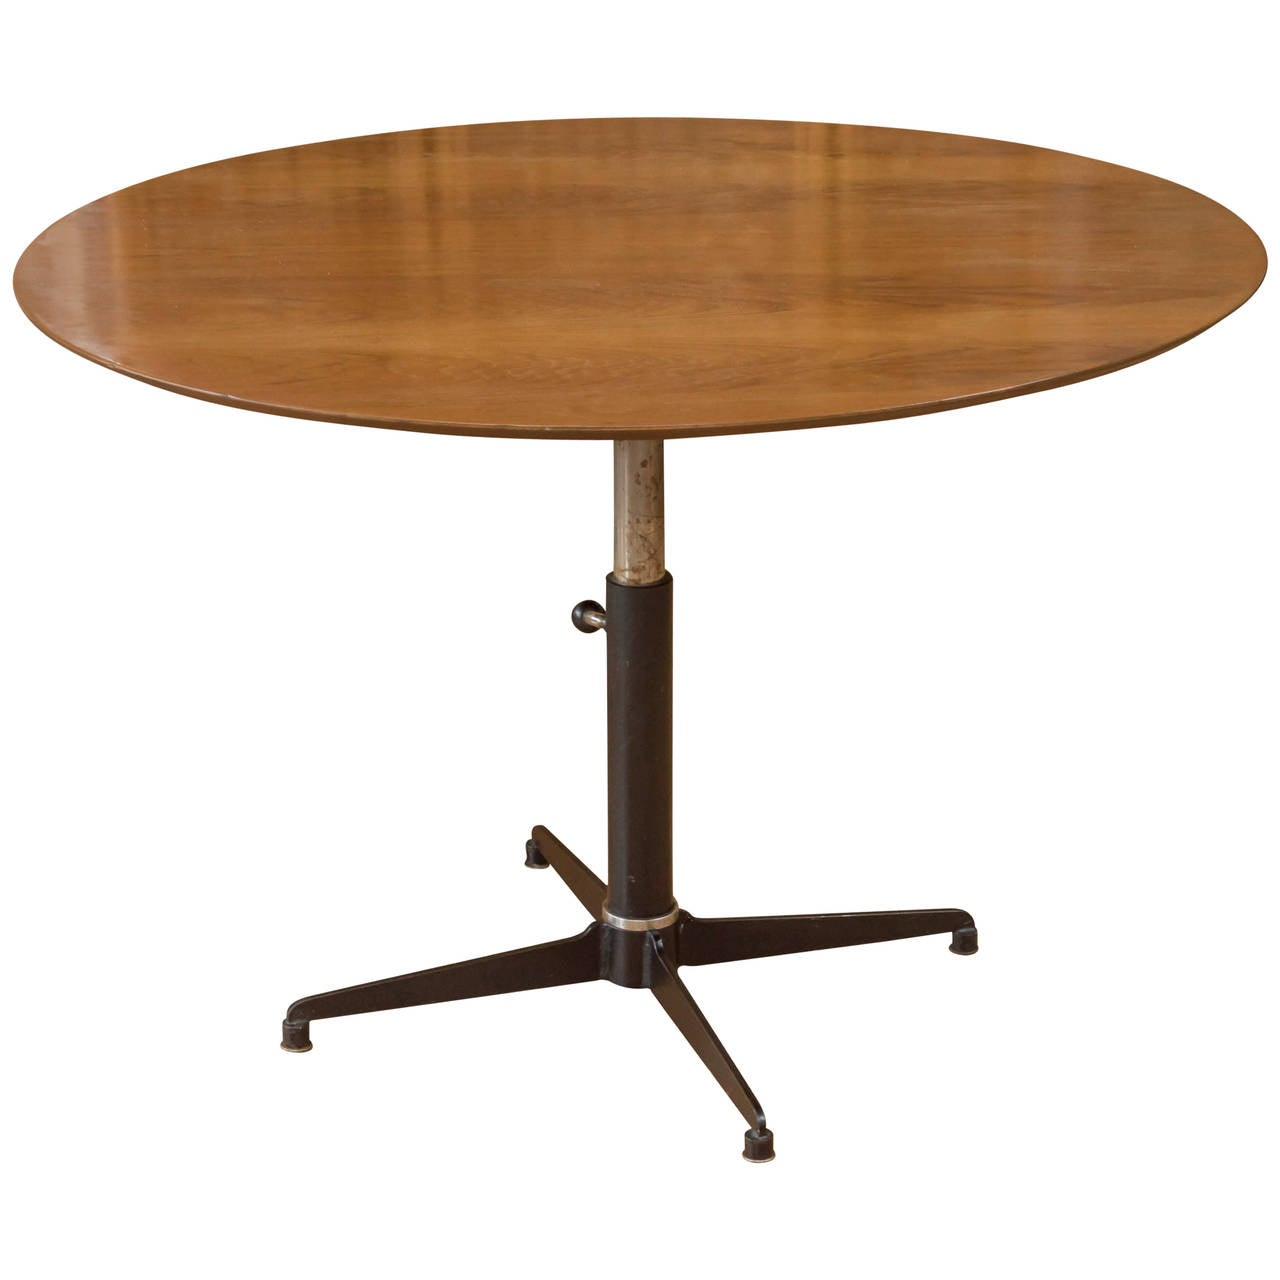 Danish teak adjustable height cocktail table for sale at for Adjustable coffee table